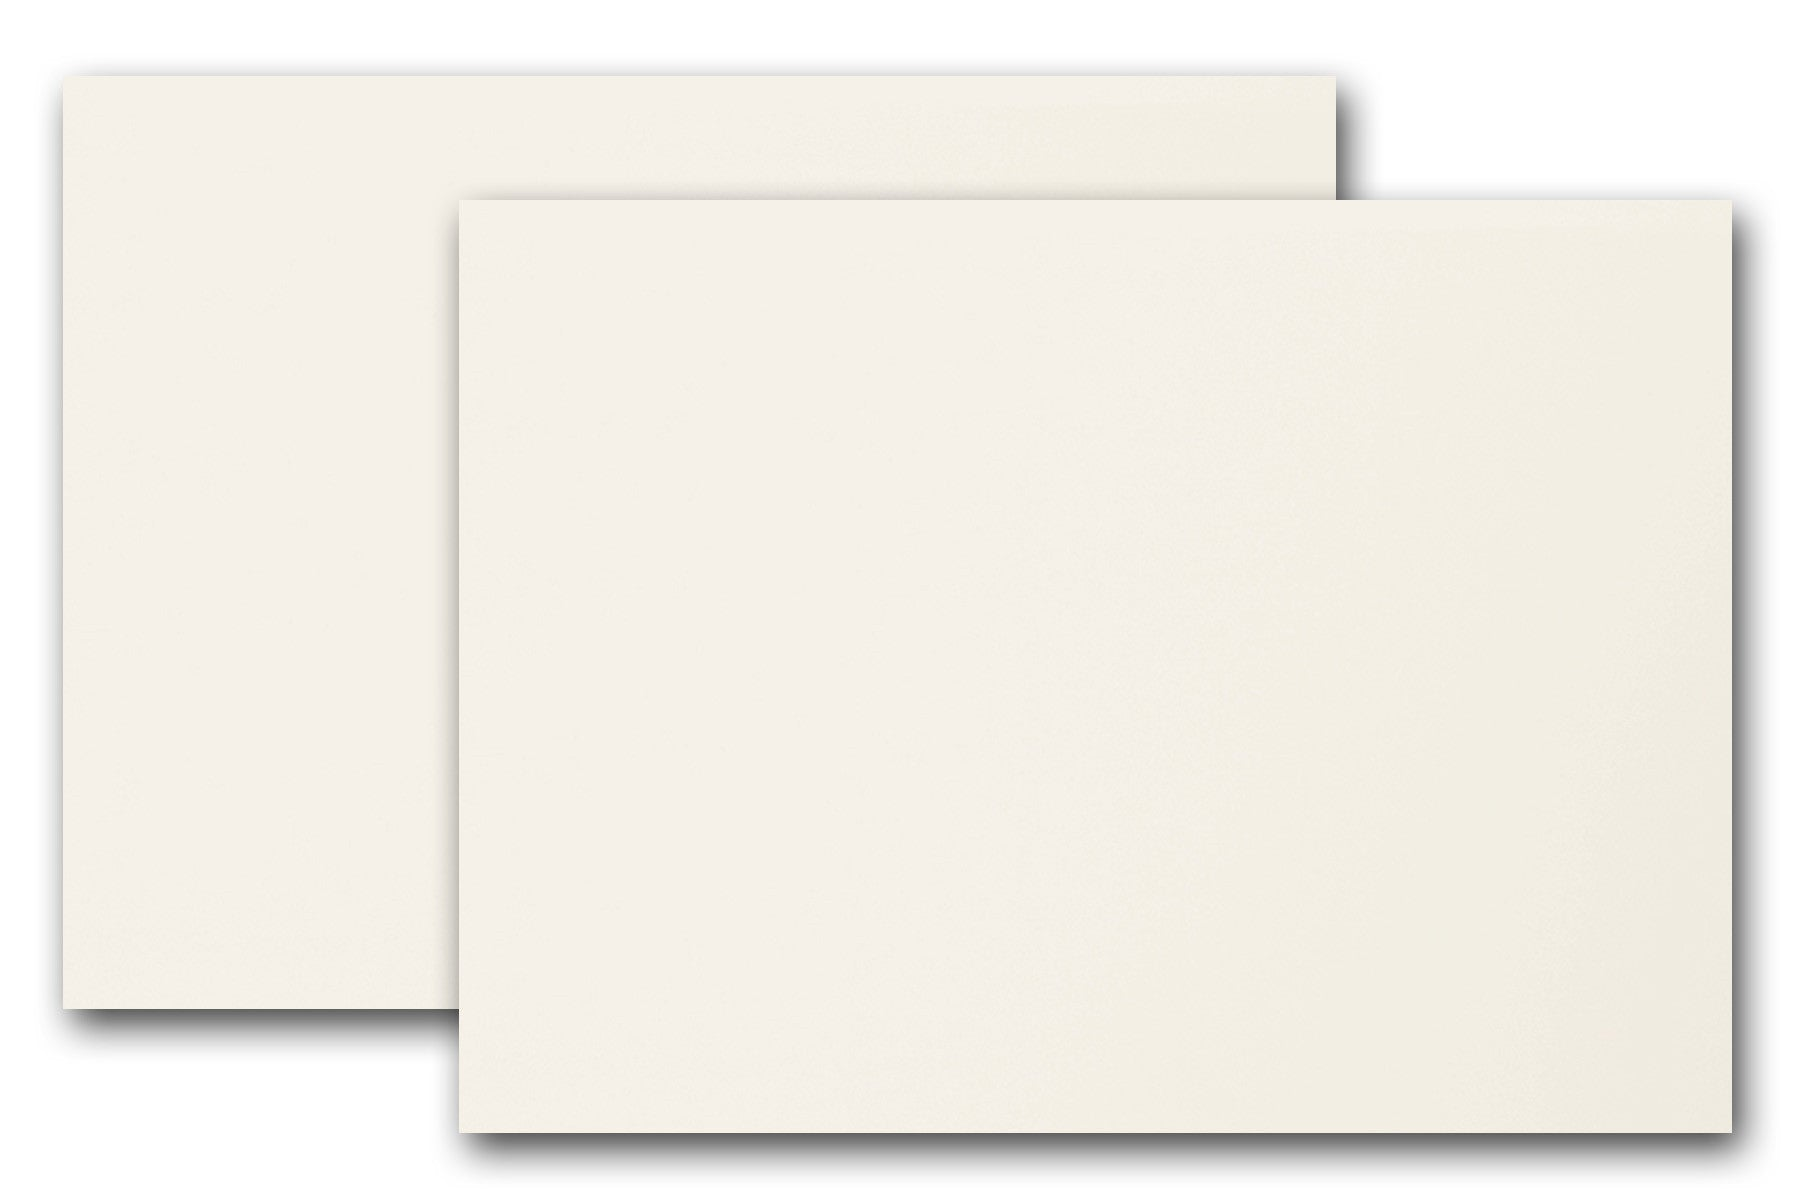 Cougar Natural 12x18 60 Lb Text Paper 1200 Sheets